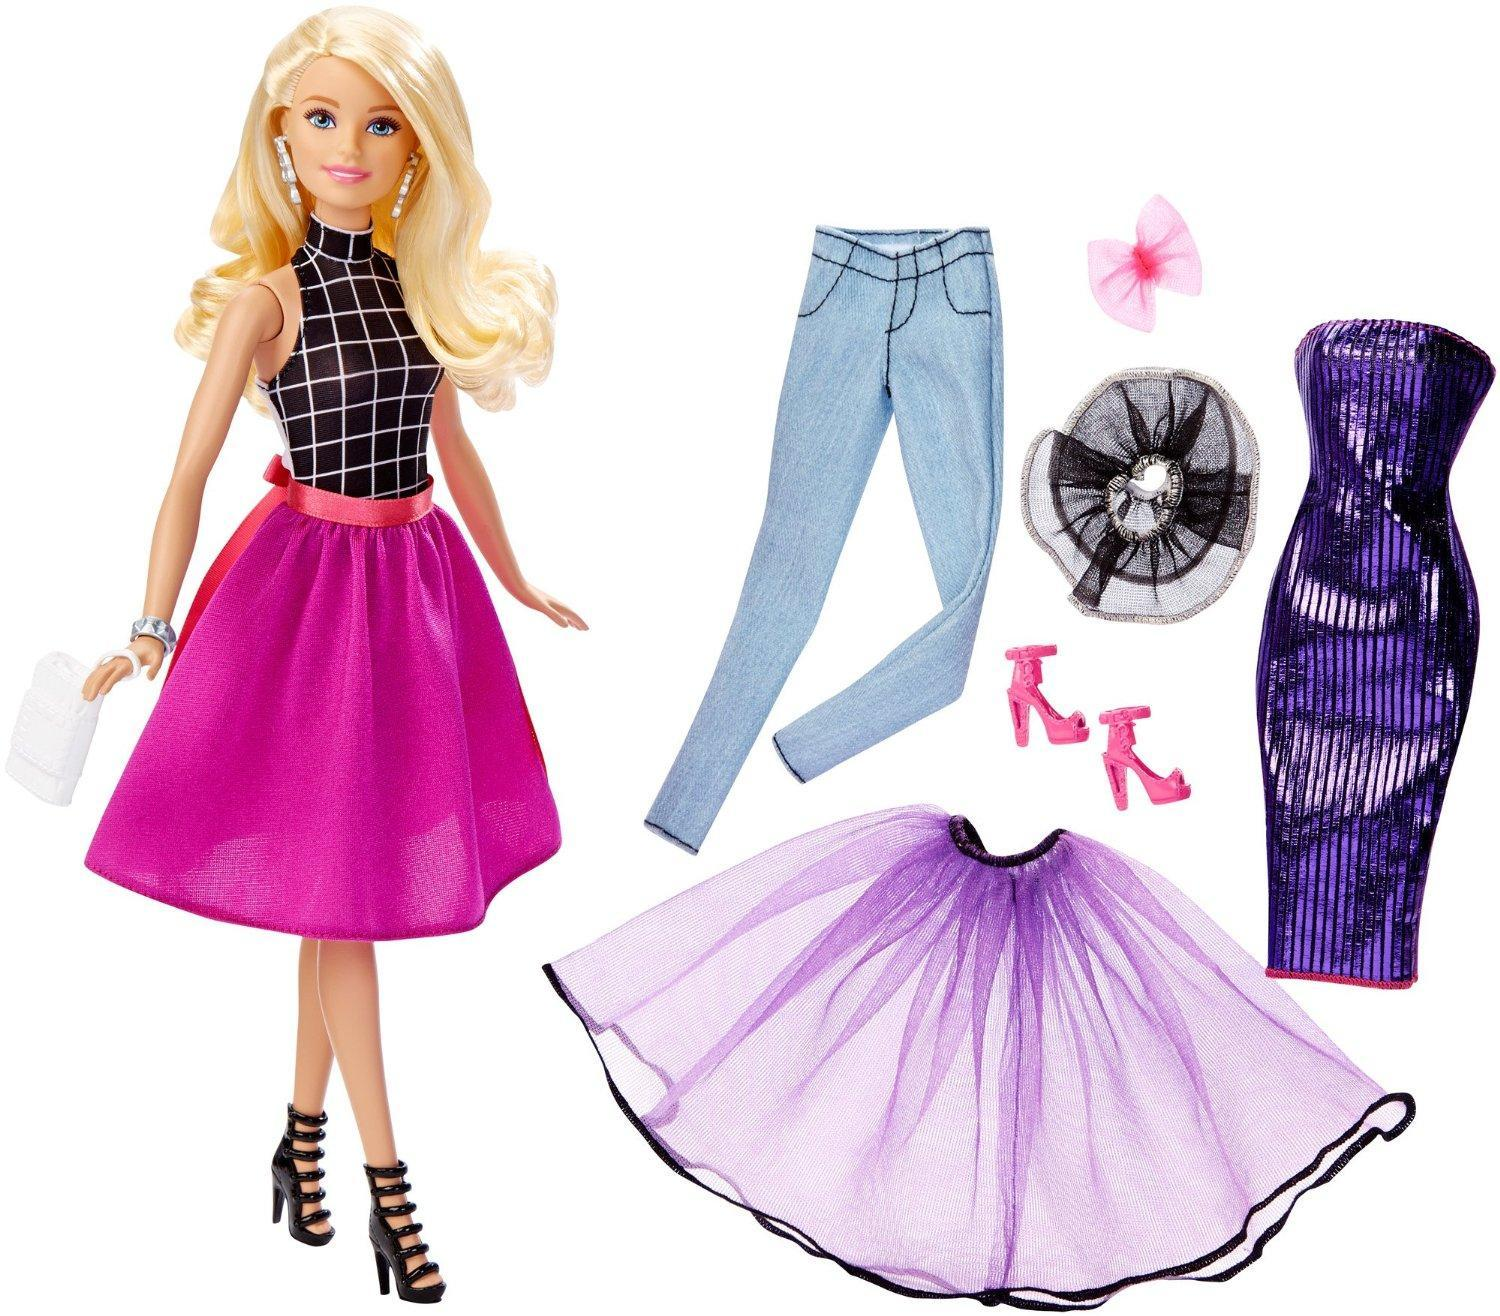 Barbie In The Pink Shoes Games Dress Up